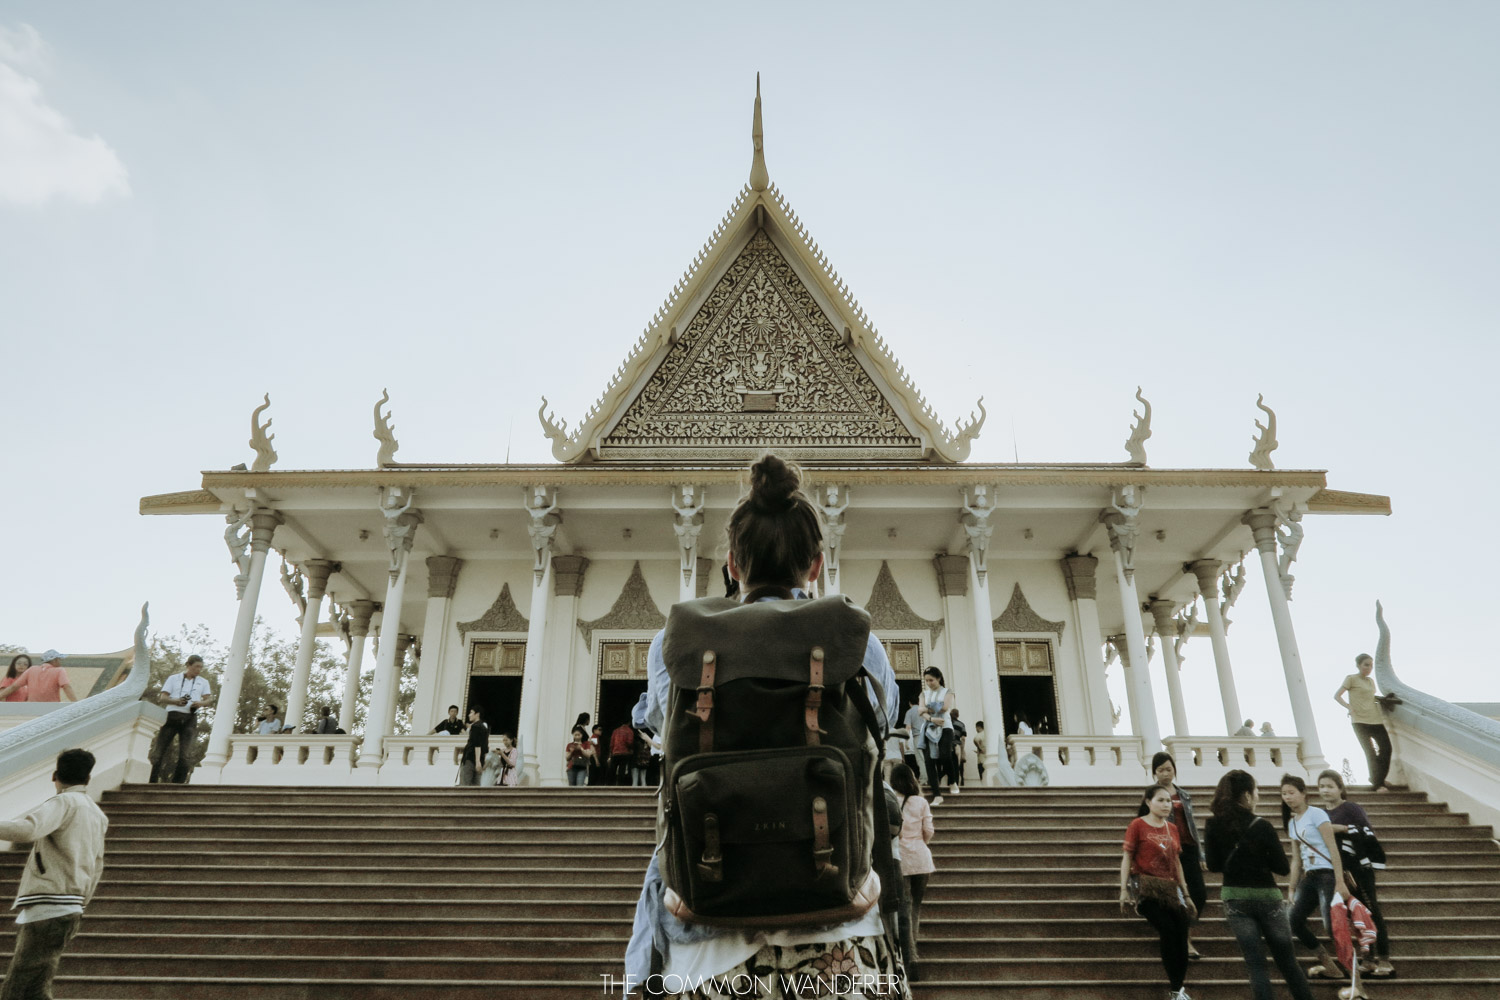 Cambodia photo diary - Phnom Penh palace